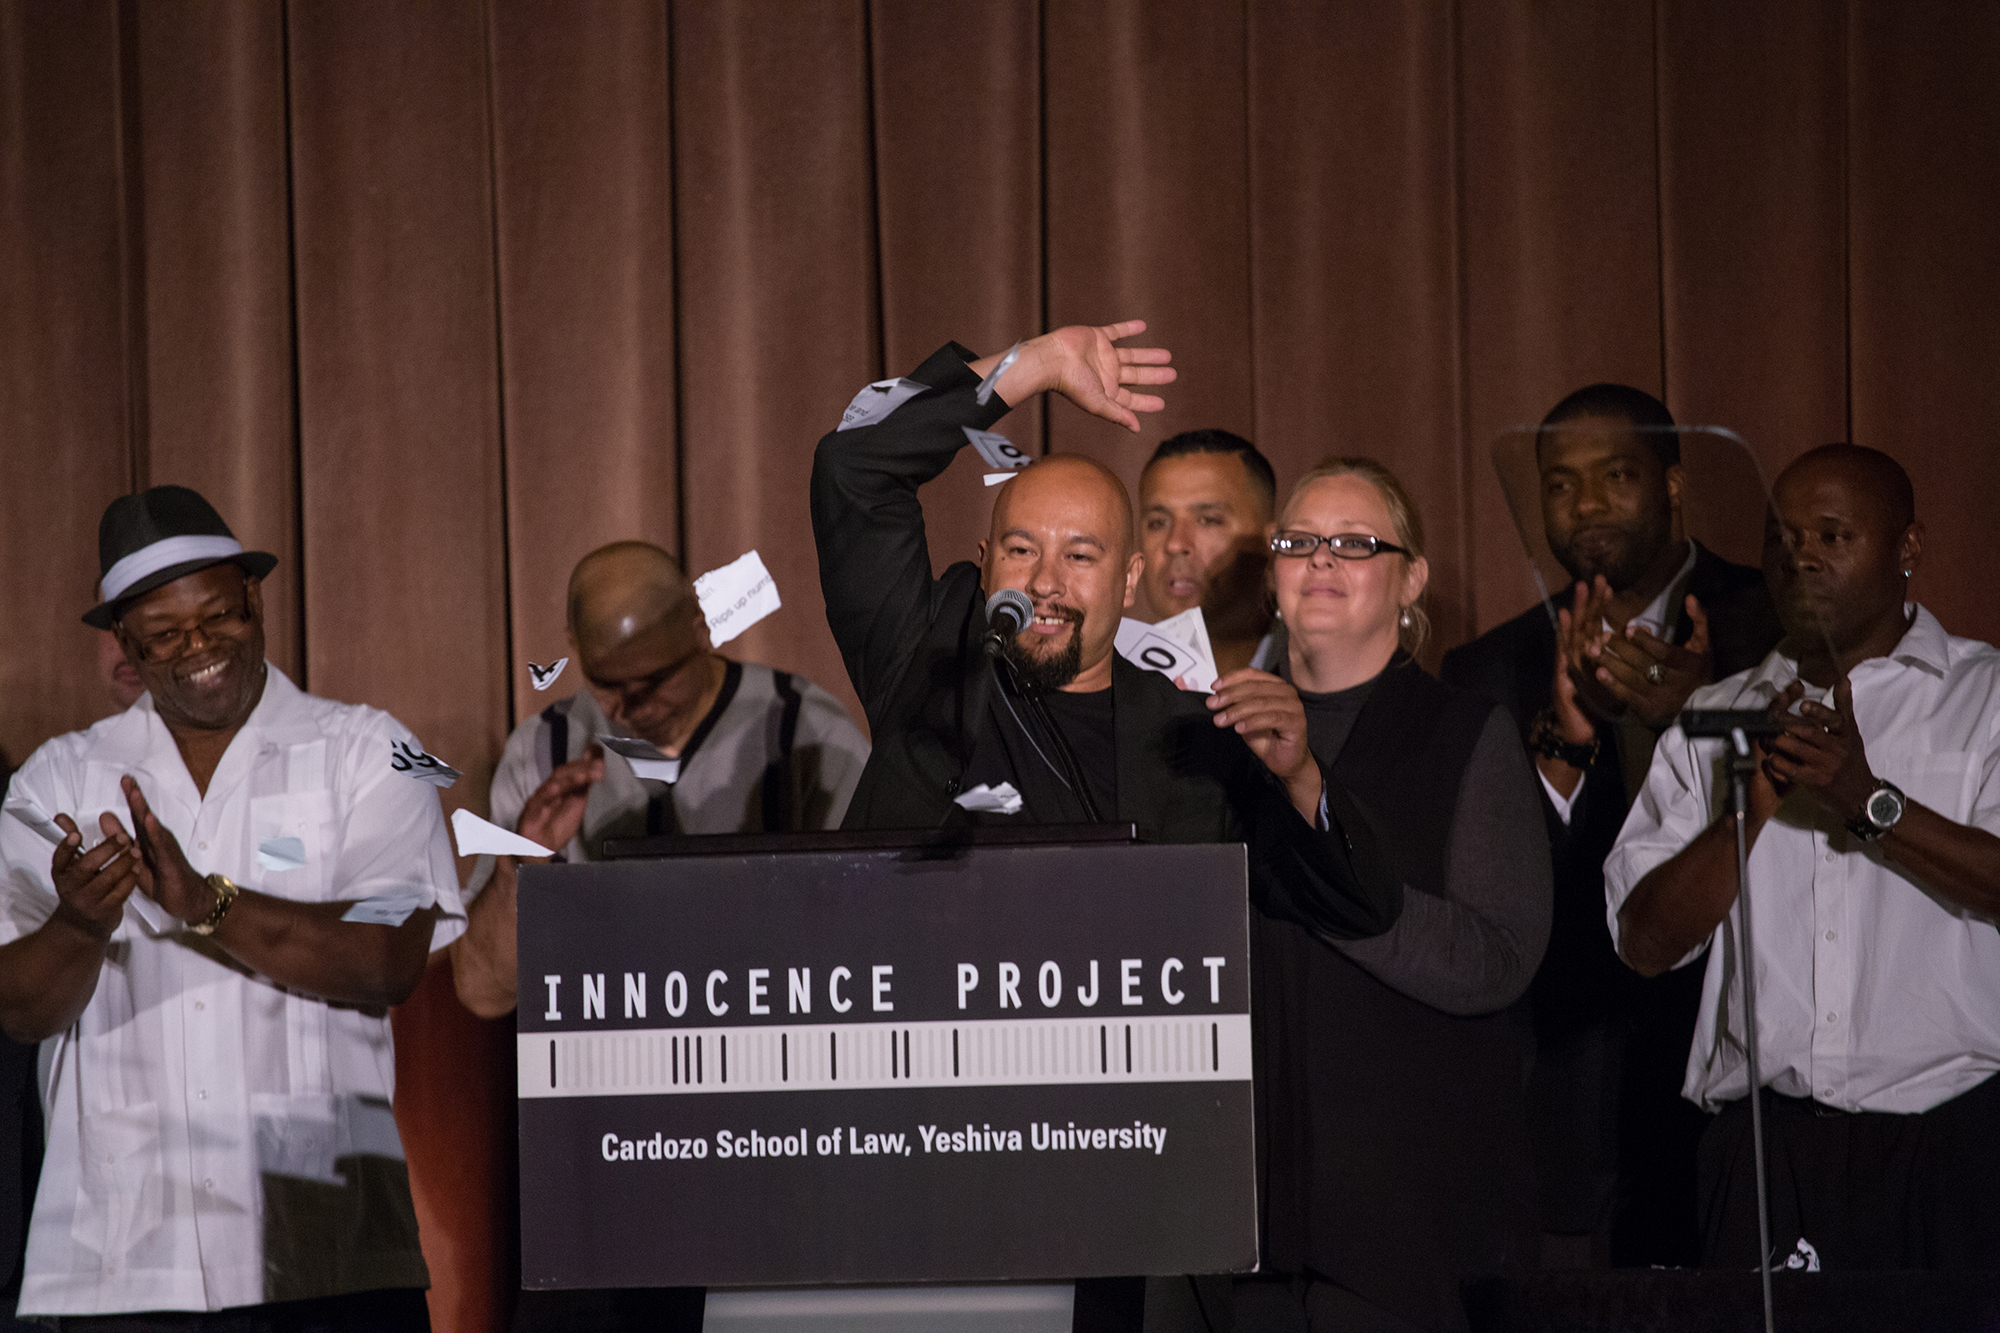 innocence project fundraiser photo